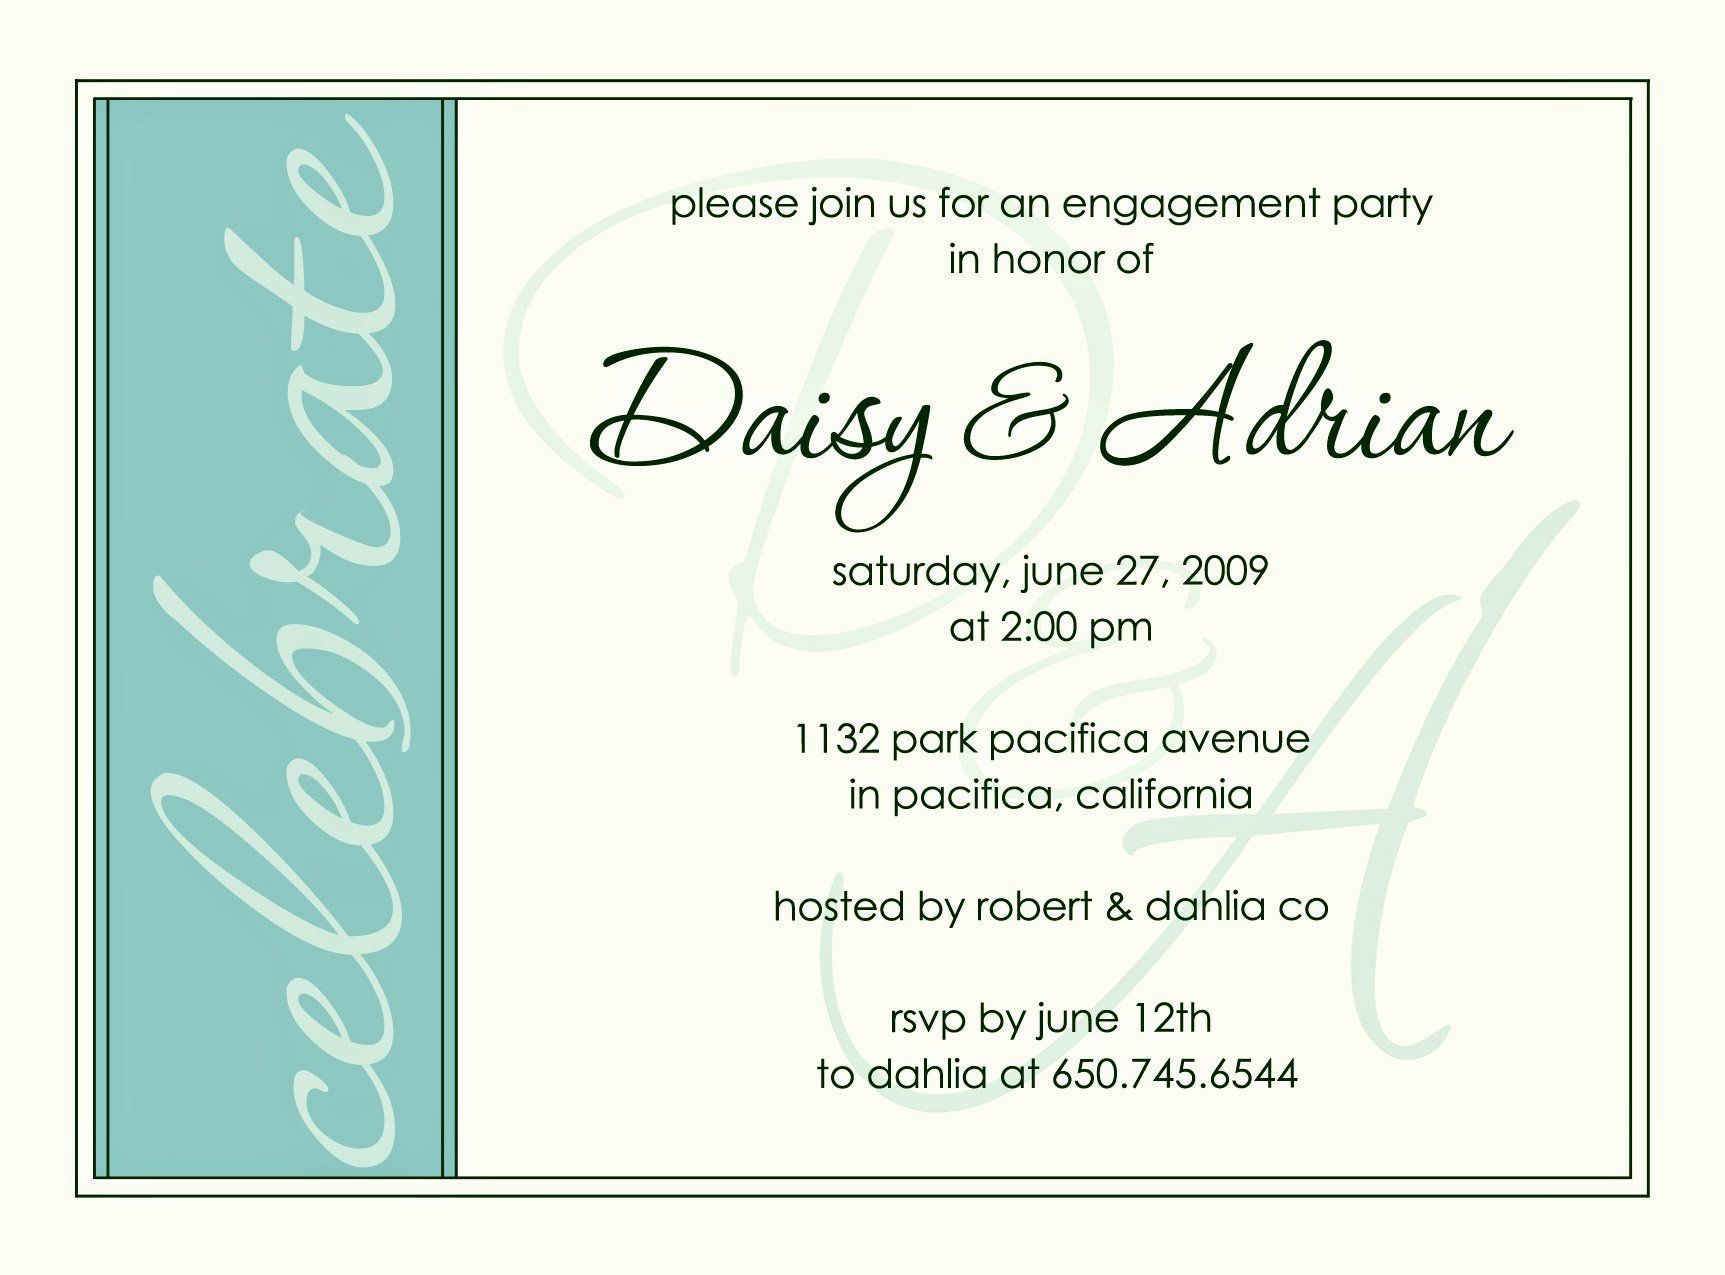 Free Engagement Party Invitation Template Beautiful Engagement Invitations Engag Free Engagement Party Invitation Template Beautiful Engagement Invitations I 2020